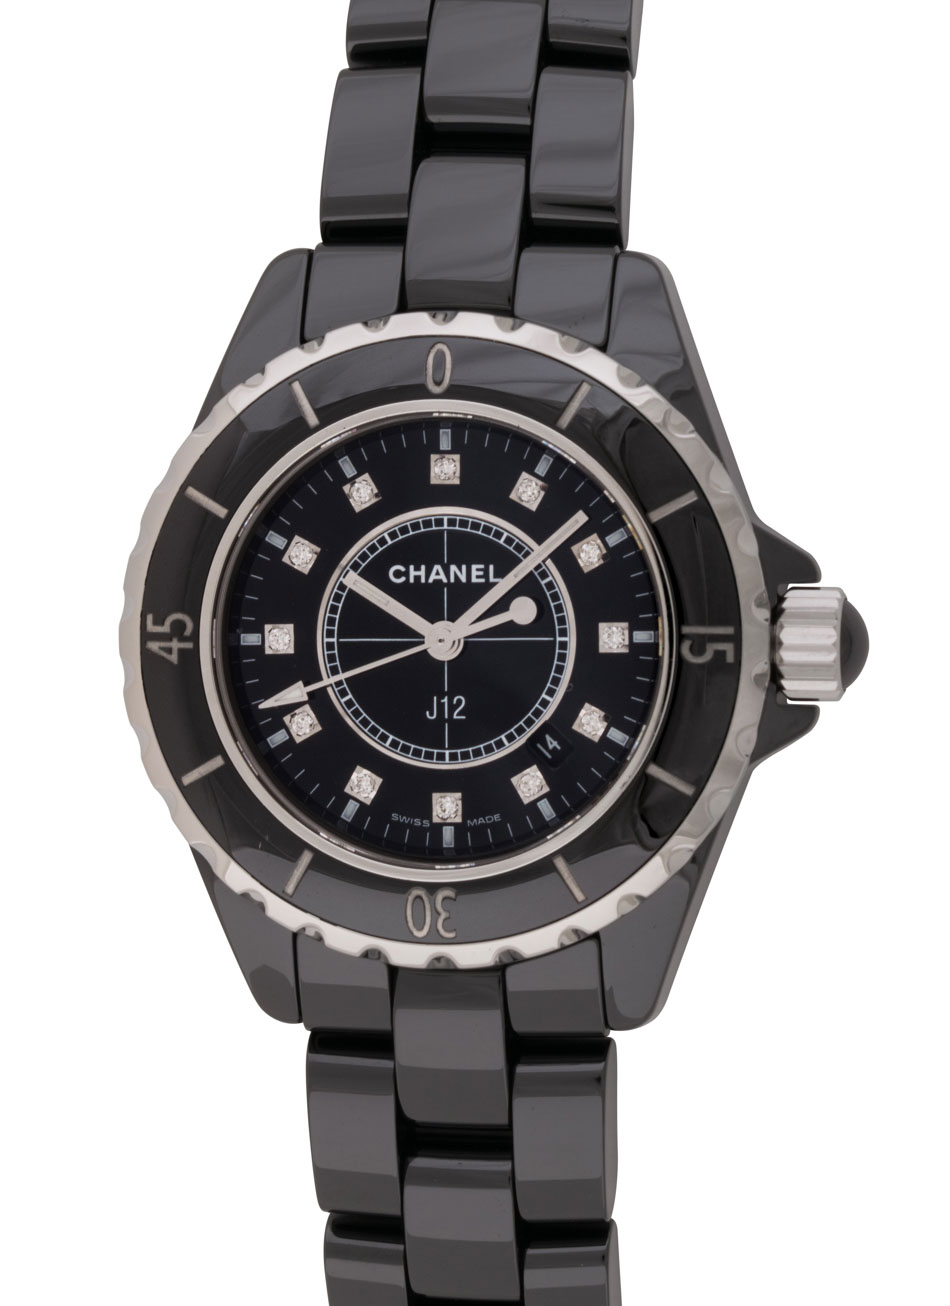 chronograph watch black miltons chanel diamonds ceramic watches image